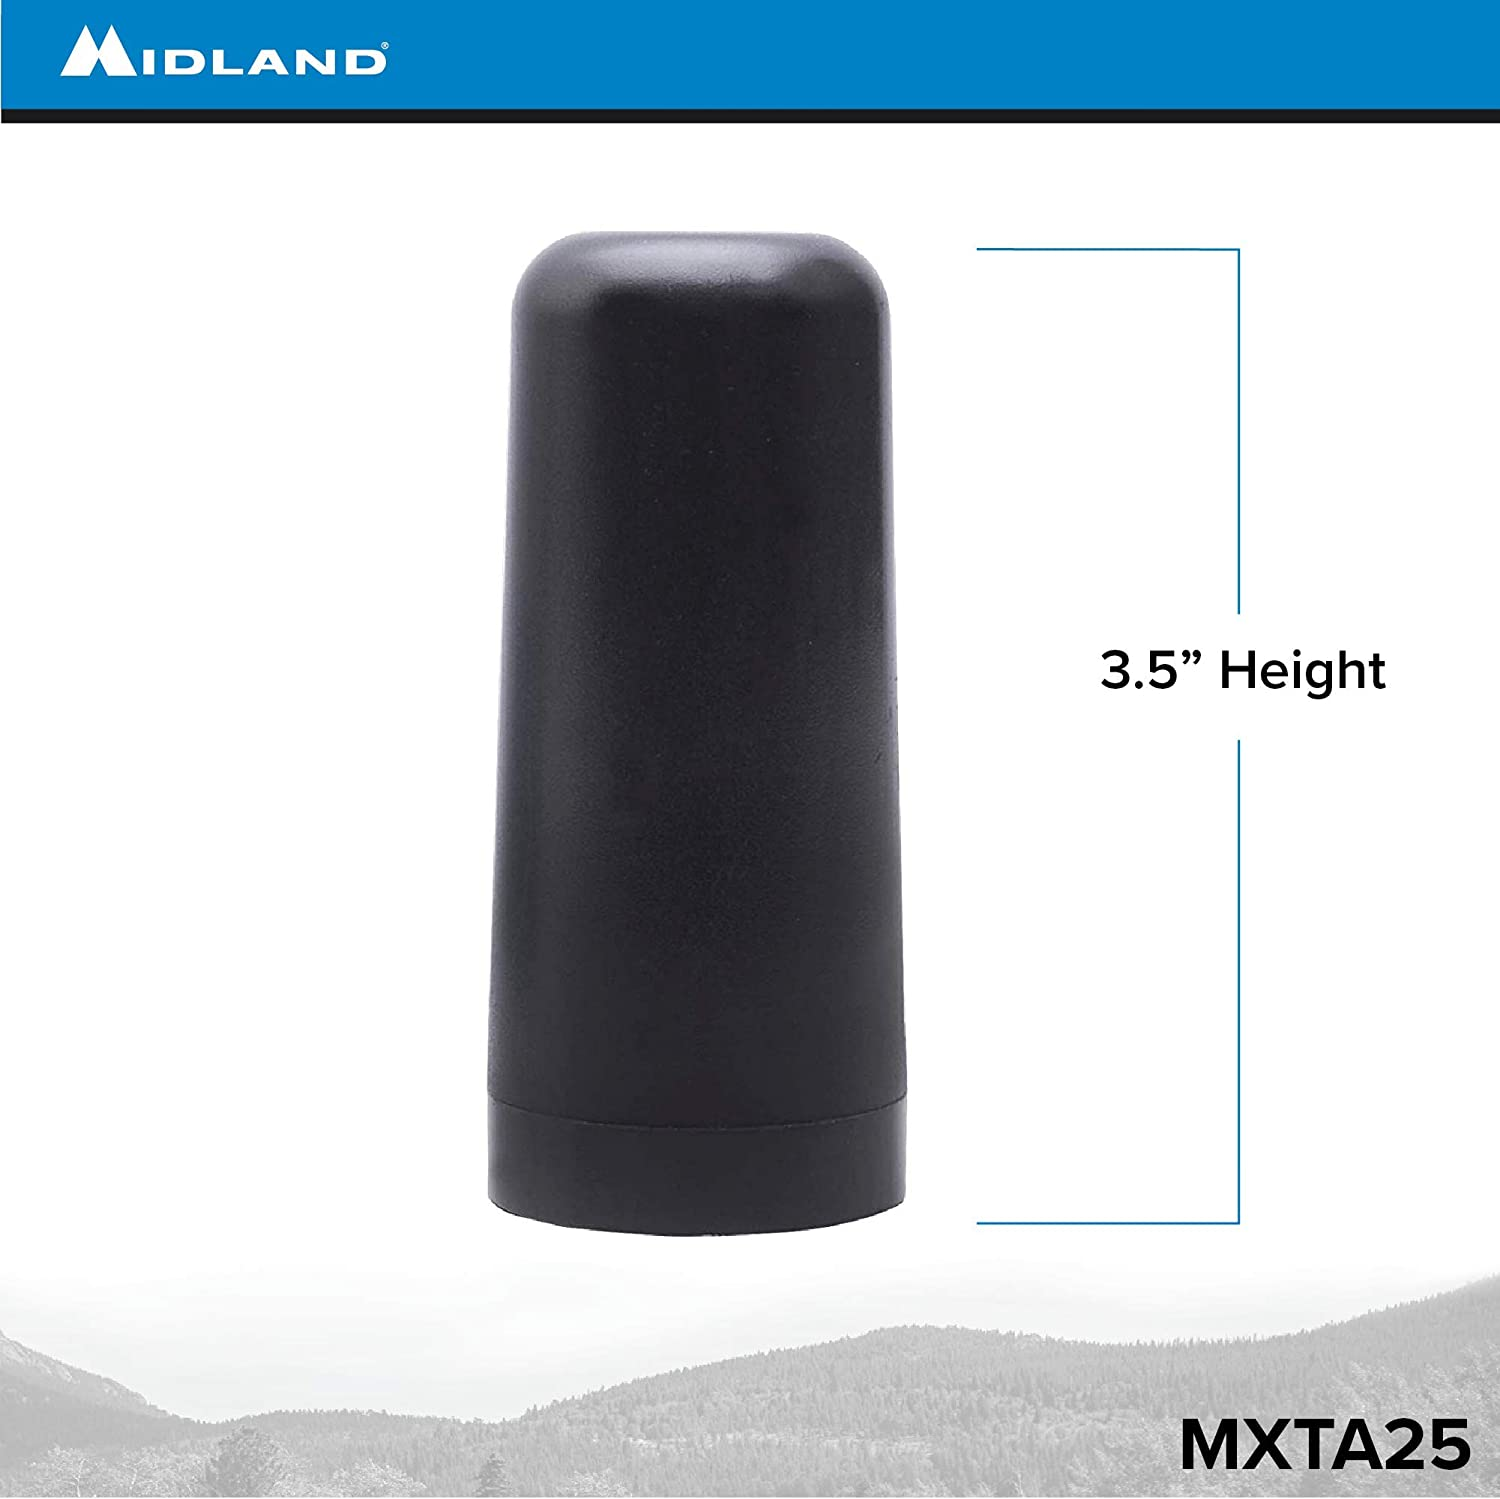 Works with Midland MicroMobile MXT105 Midland 3 dB Gain Ghost Antenna with NMO Connection MXT275 MXT400 MXT115